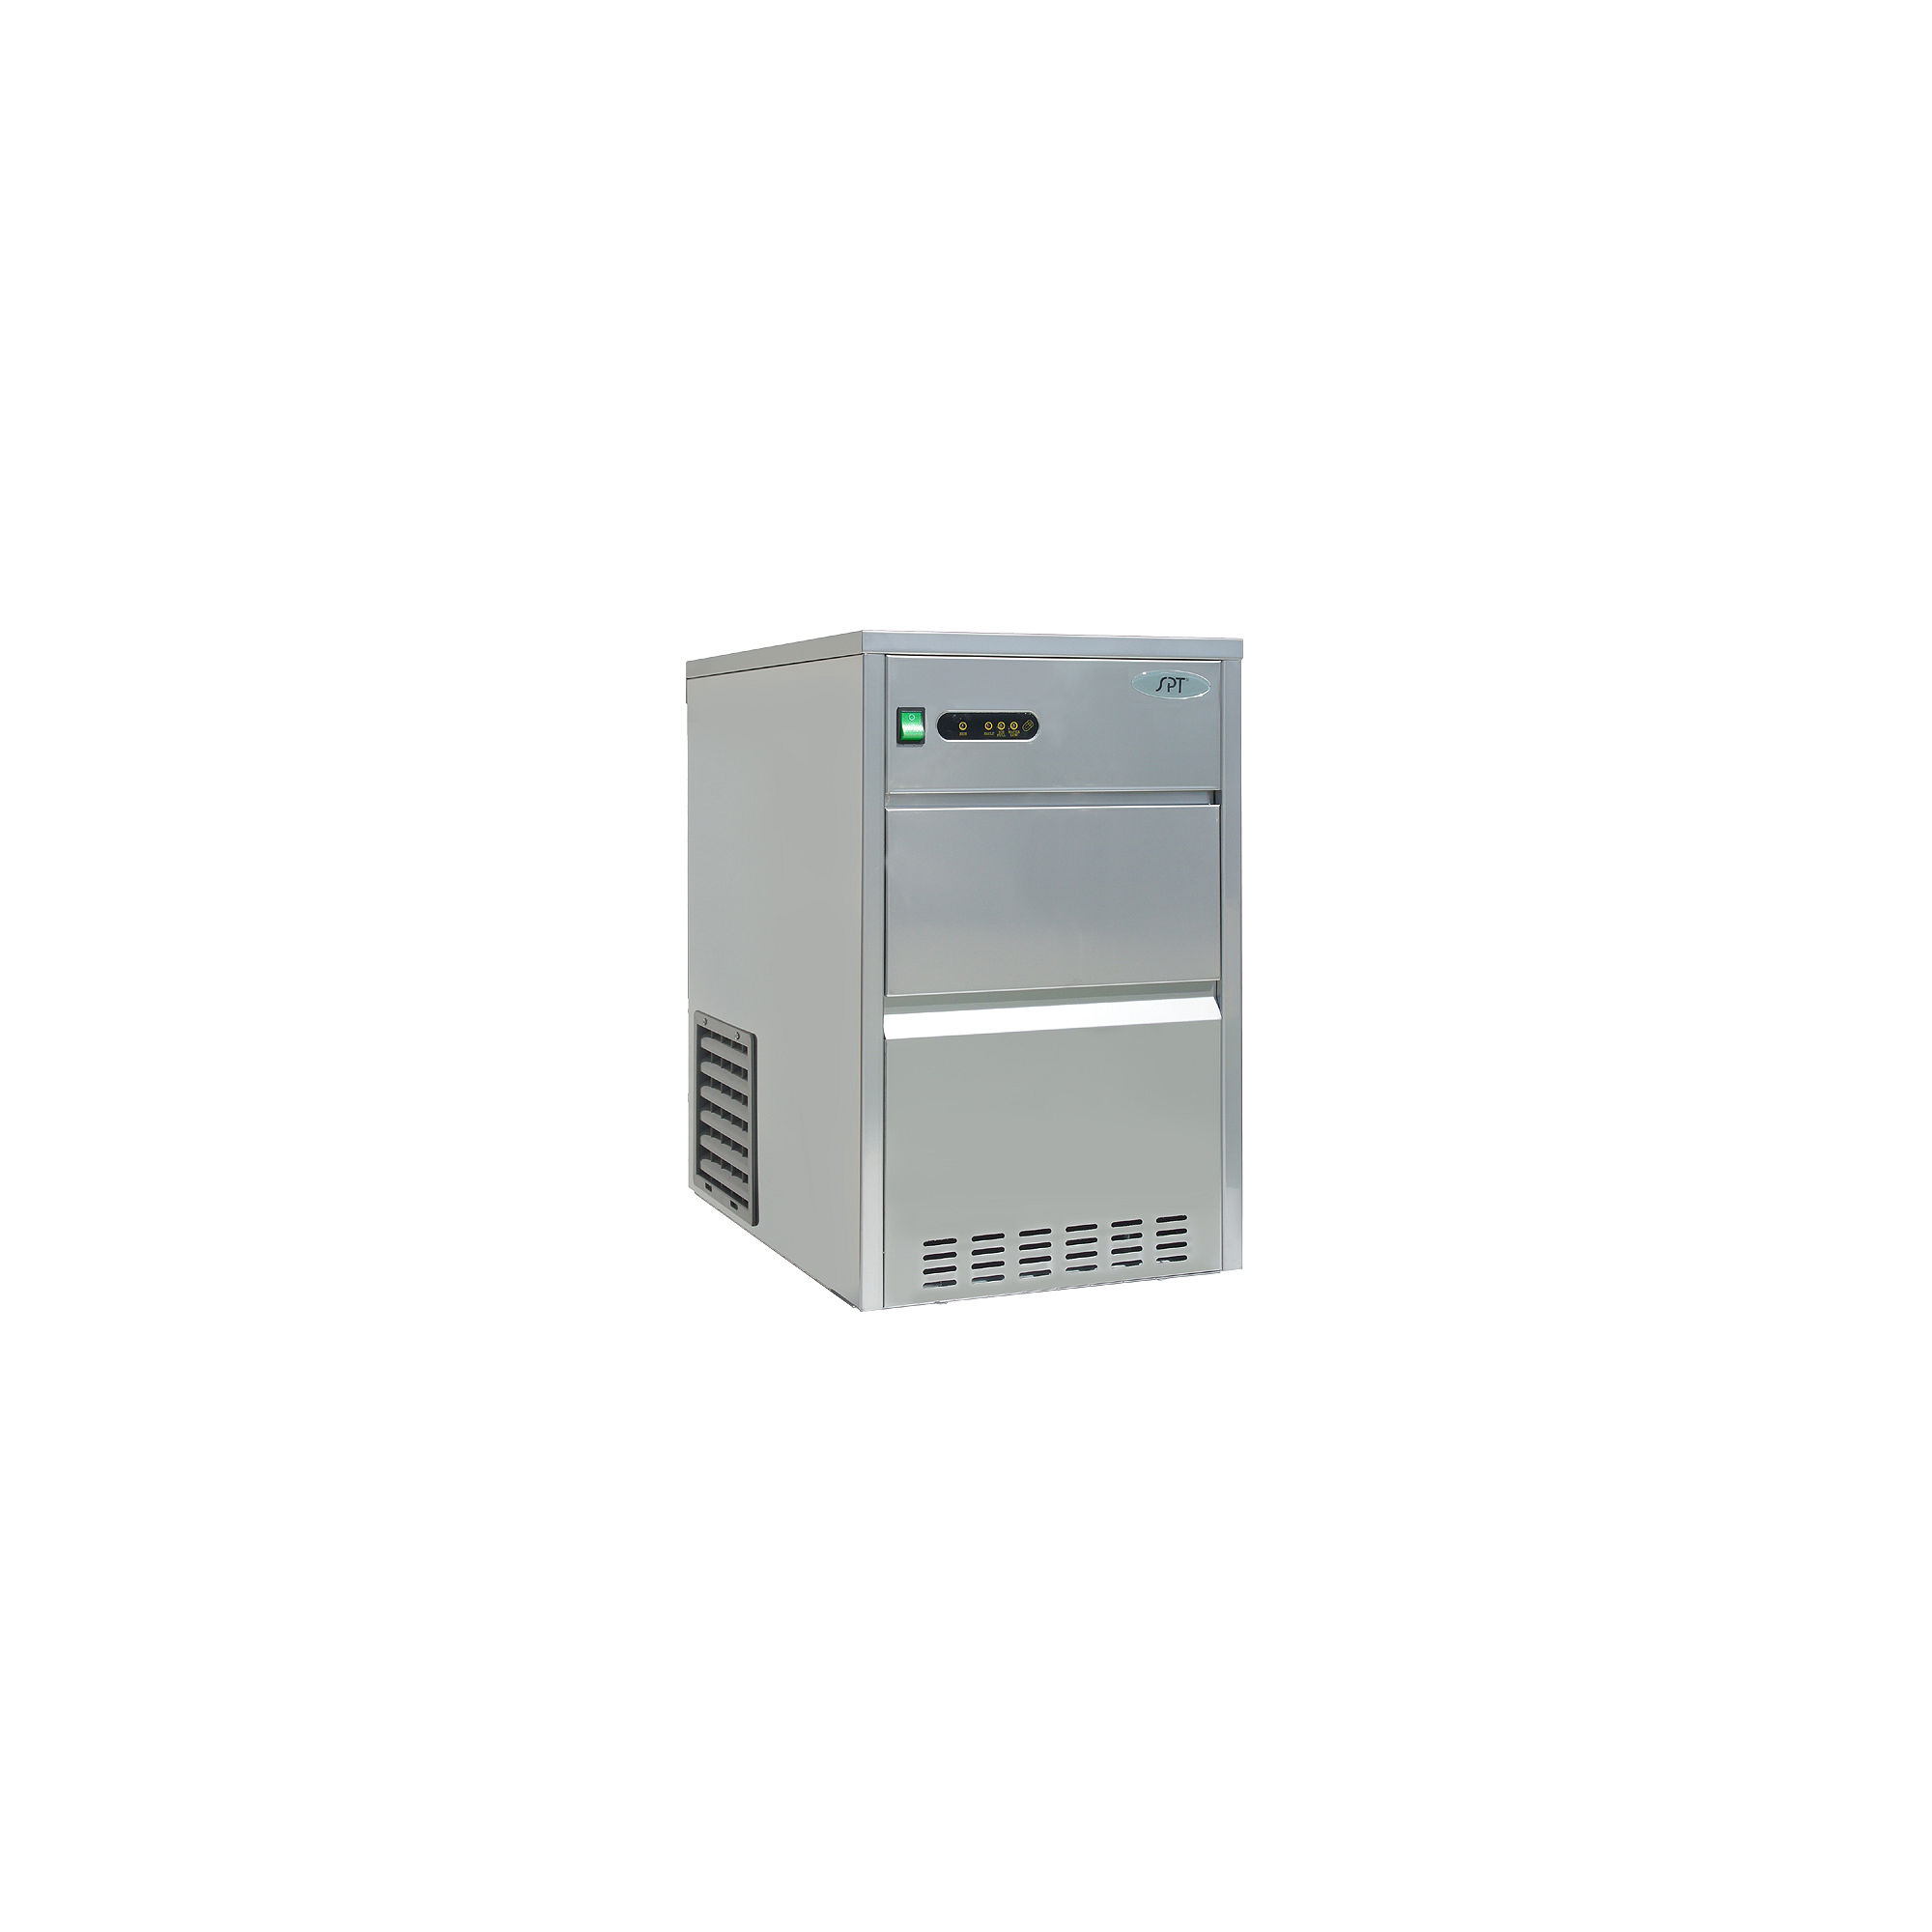 SPT IM-661C: 66 lbs Automatic Stainless Steel Ice Maker